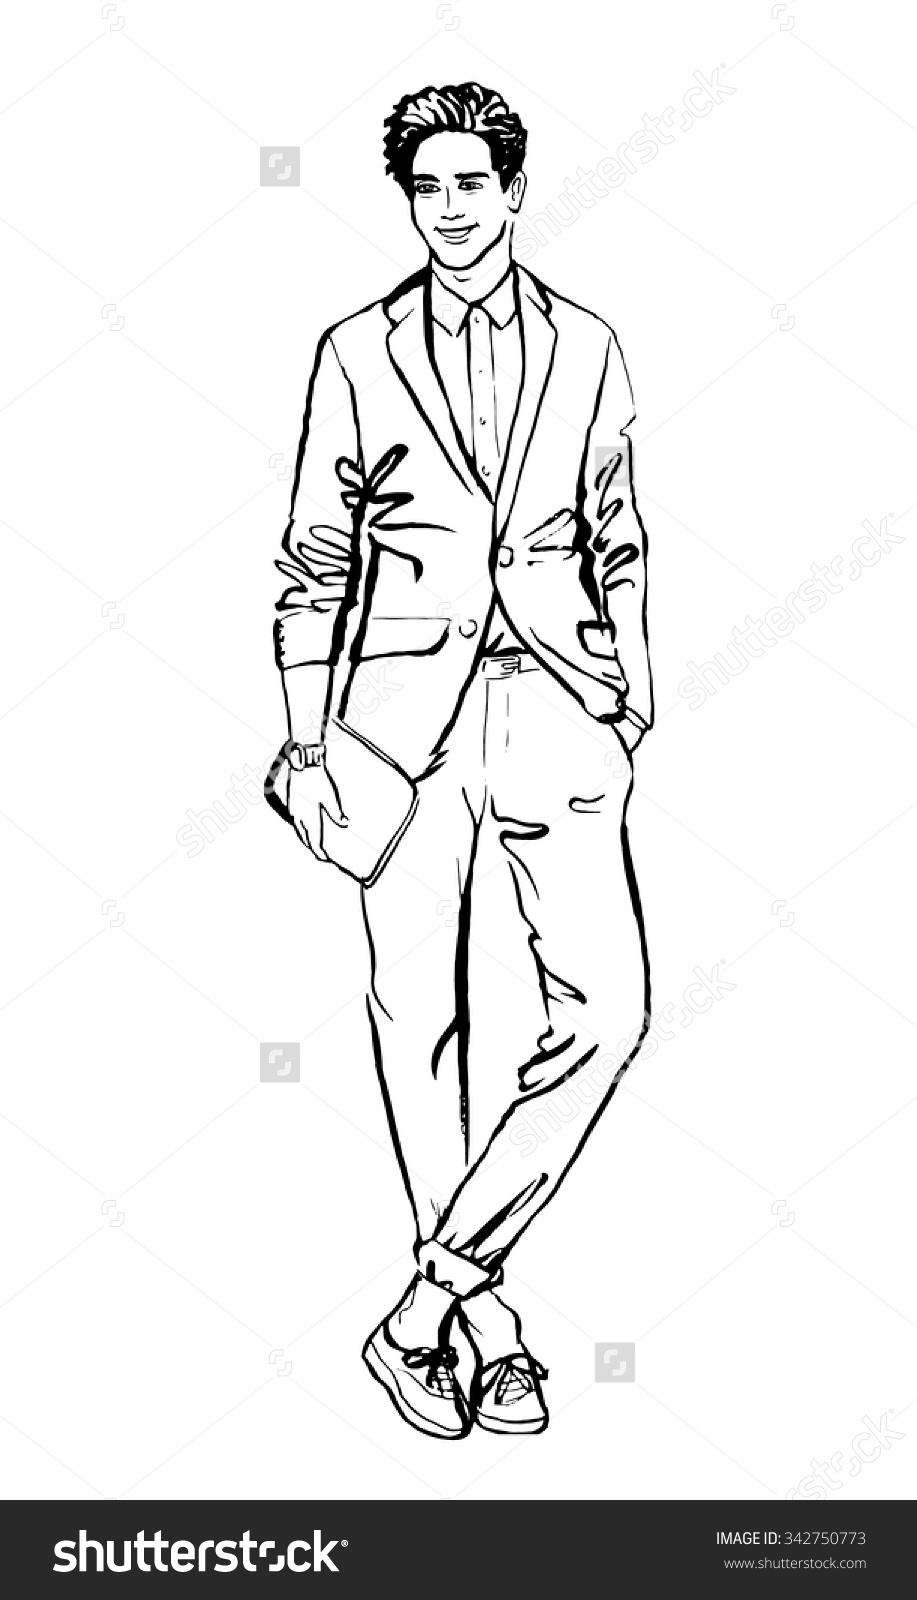 Fashion Illustration Man Hand Drawn Ink Stock Vector 342750773.